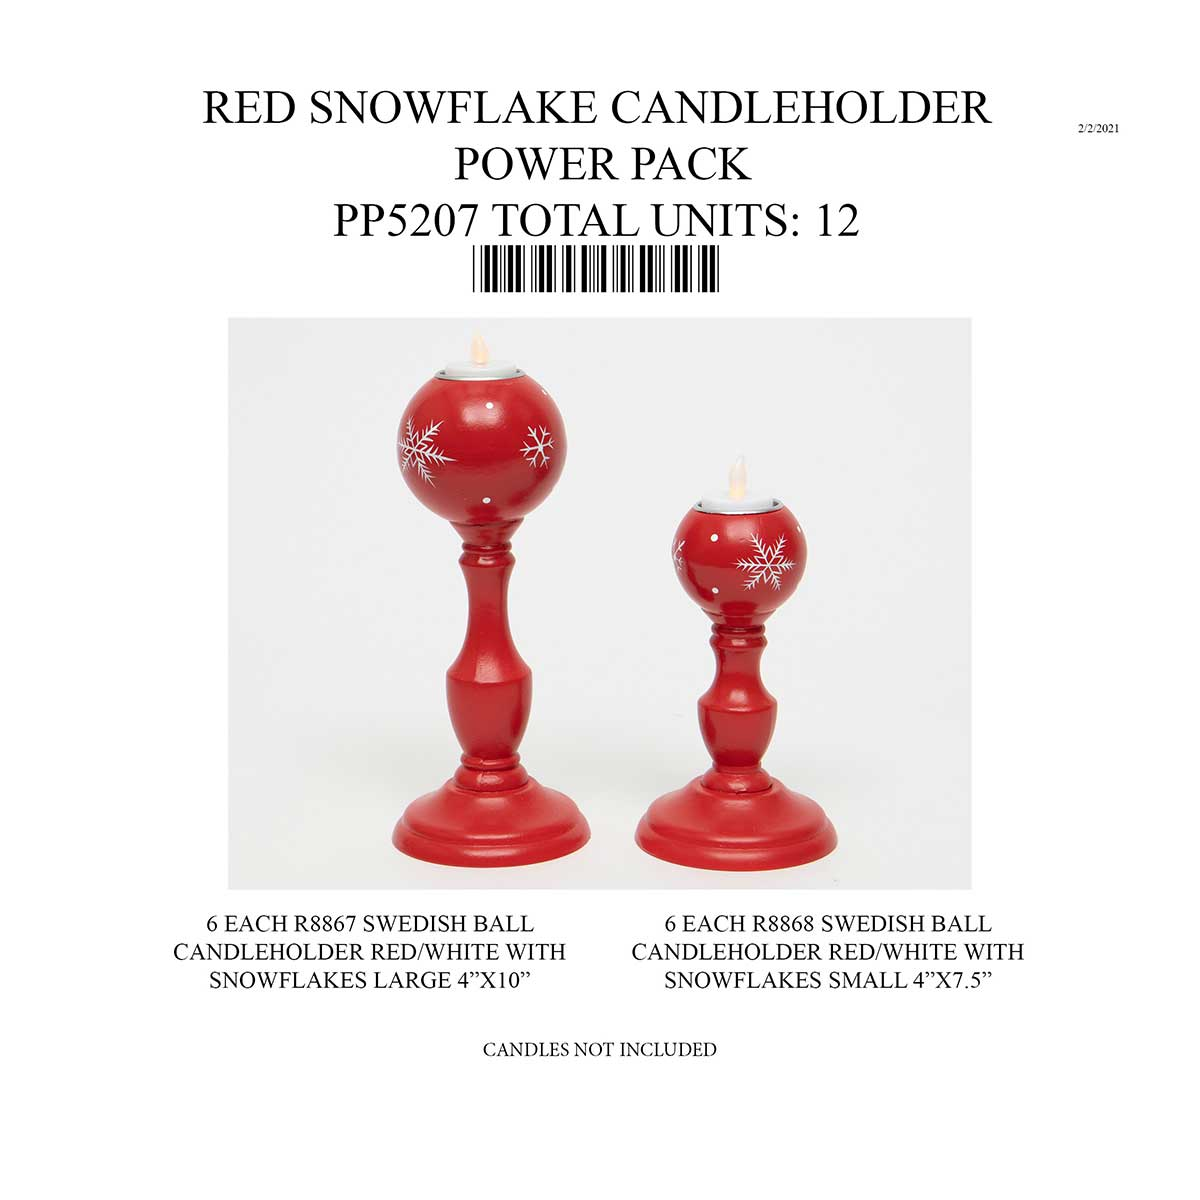 RED SWEDISH SNOWFLAKE CANDLEHOLDER POWER PACK 12 UNITS PP5207